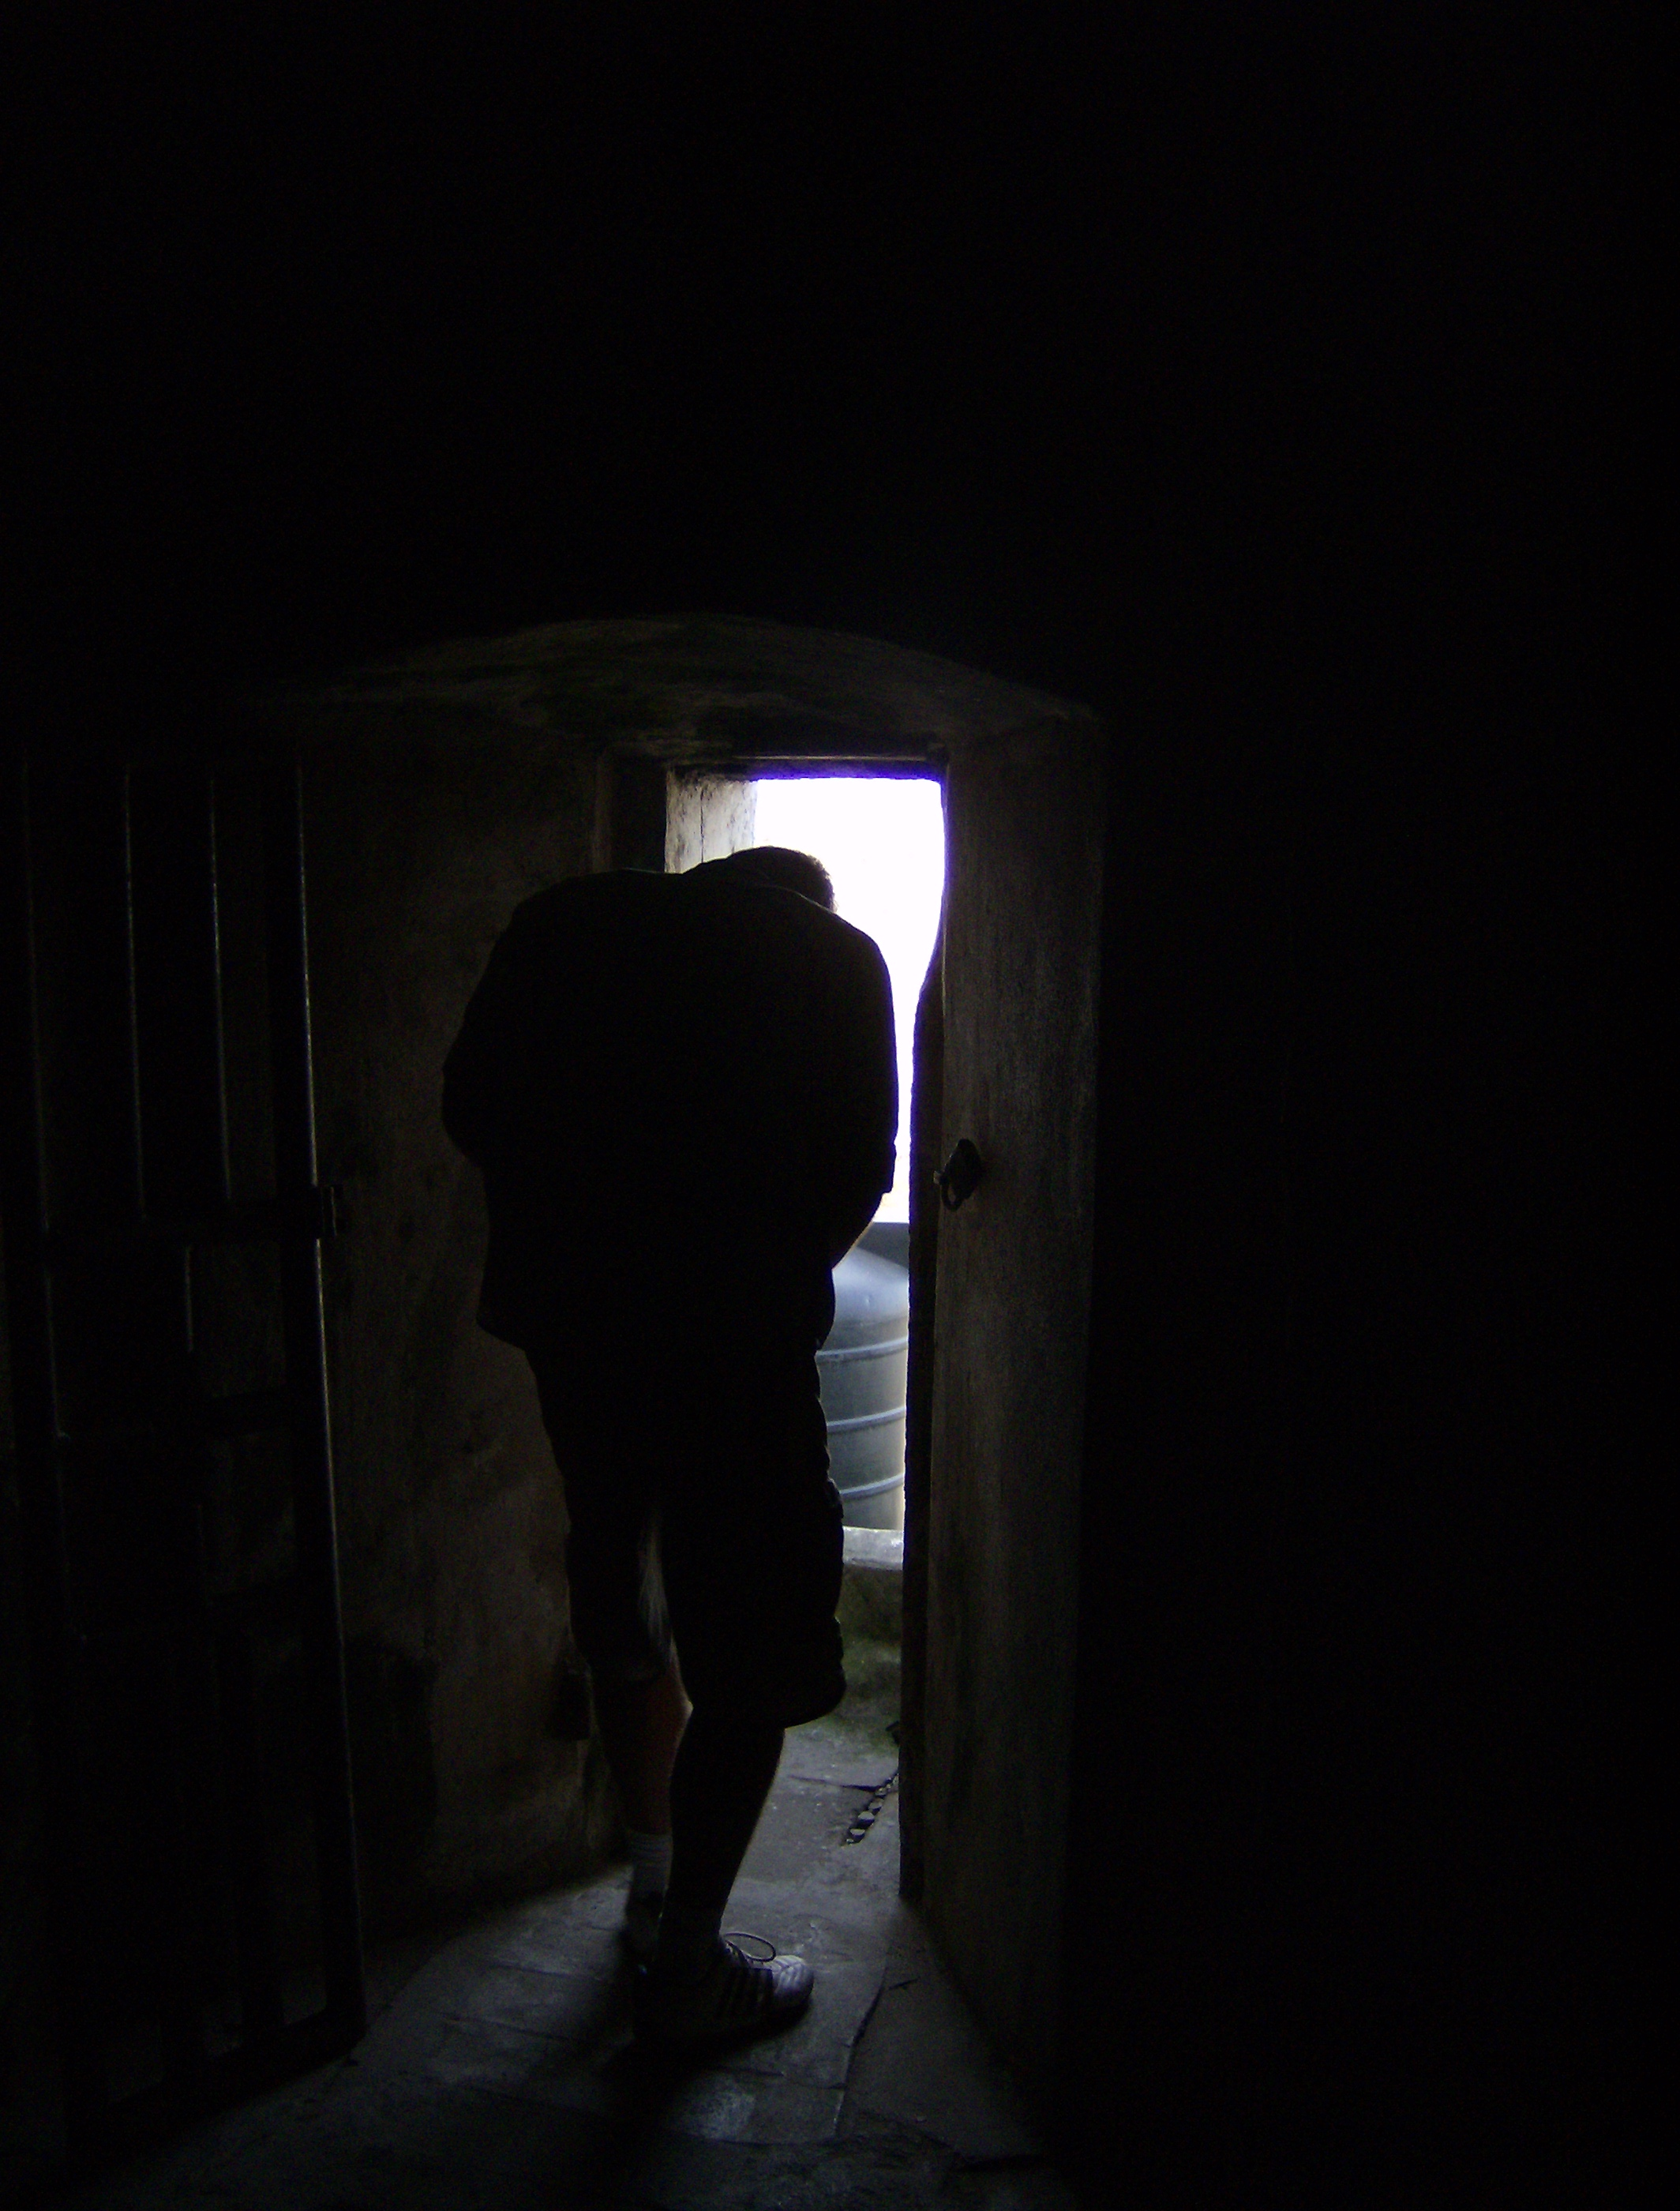 Dark room with light through door - A Man Crouches To Squeeze Through A Doorway Out Of A Dark Room And Into The